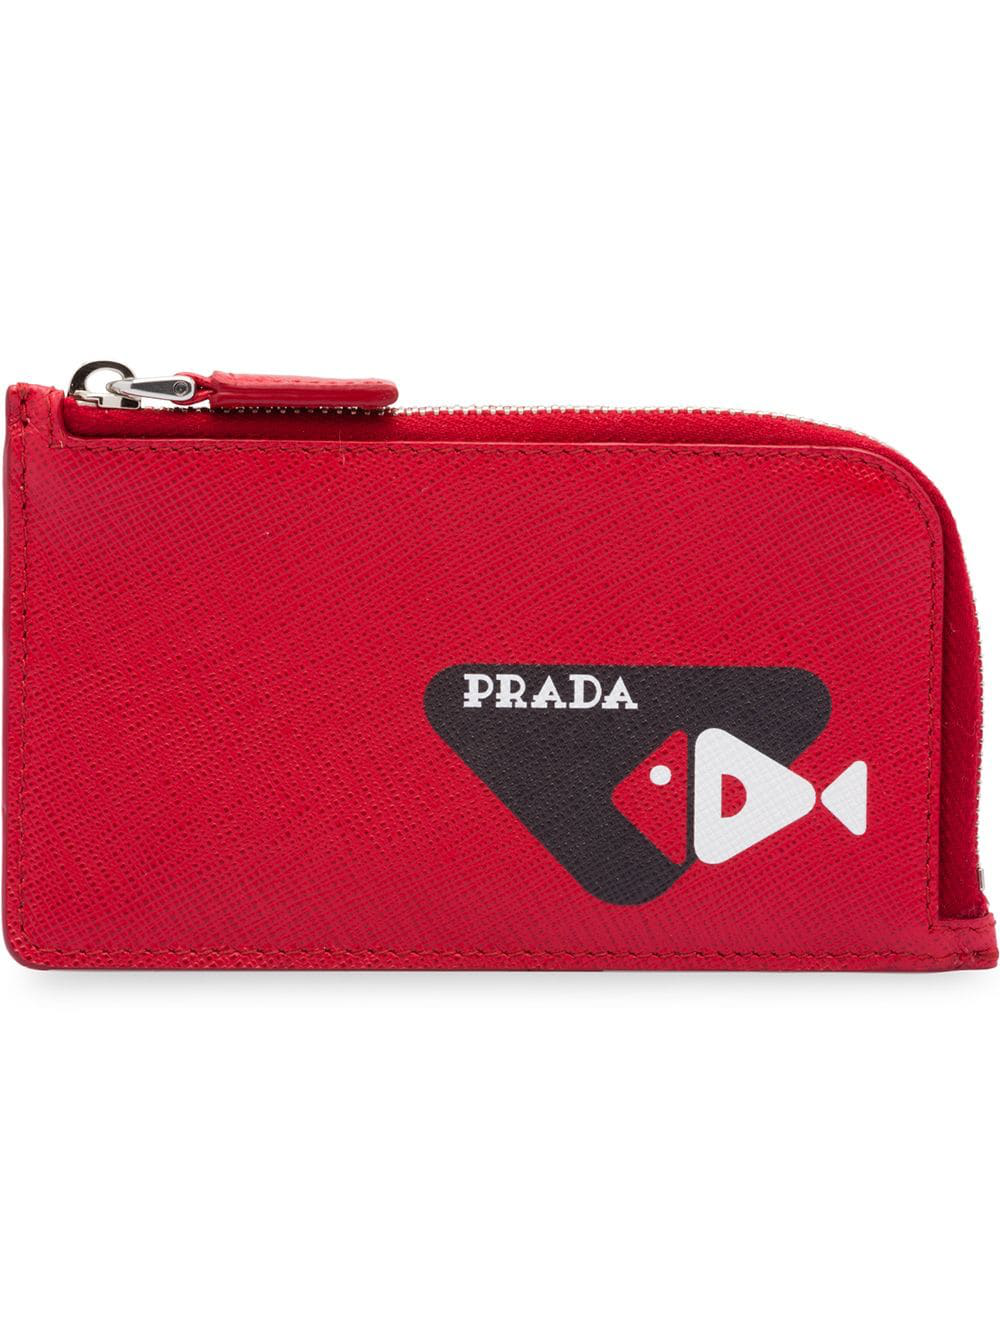 5585e87e3430 Prada Fish Sketch Motif Saffiano Leather Card Holder - Red | ModeSens